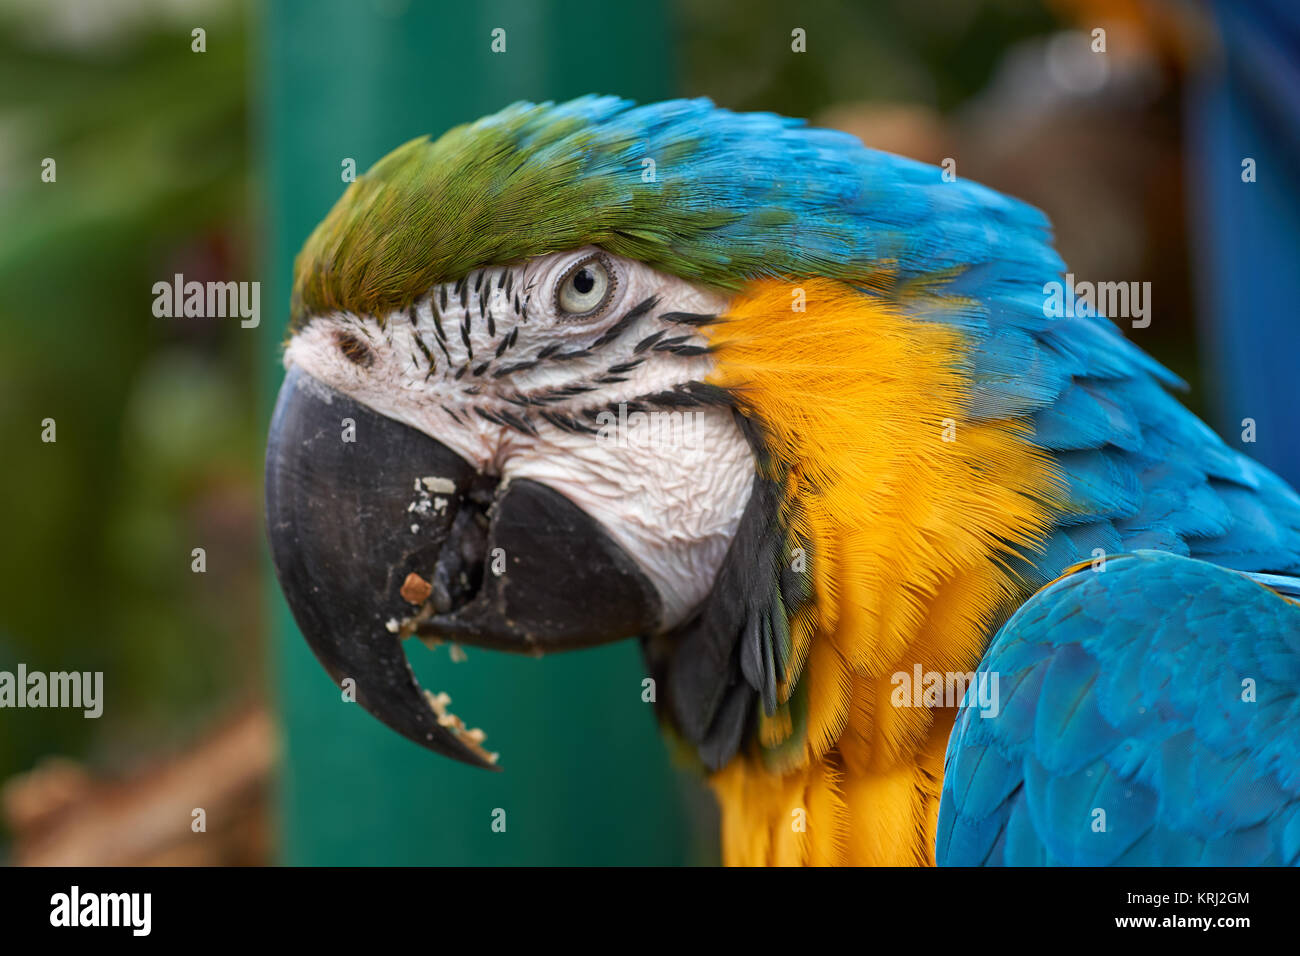 Blue-and-yellow Macaw (Ara ararauna) parrot - head from the side - Stock Image